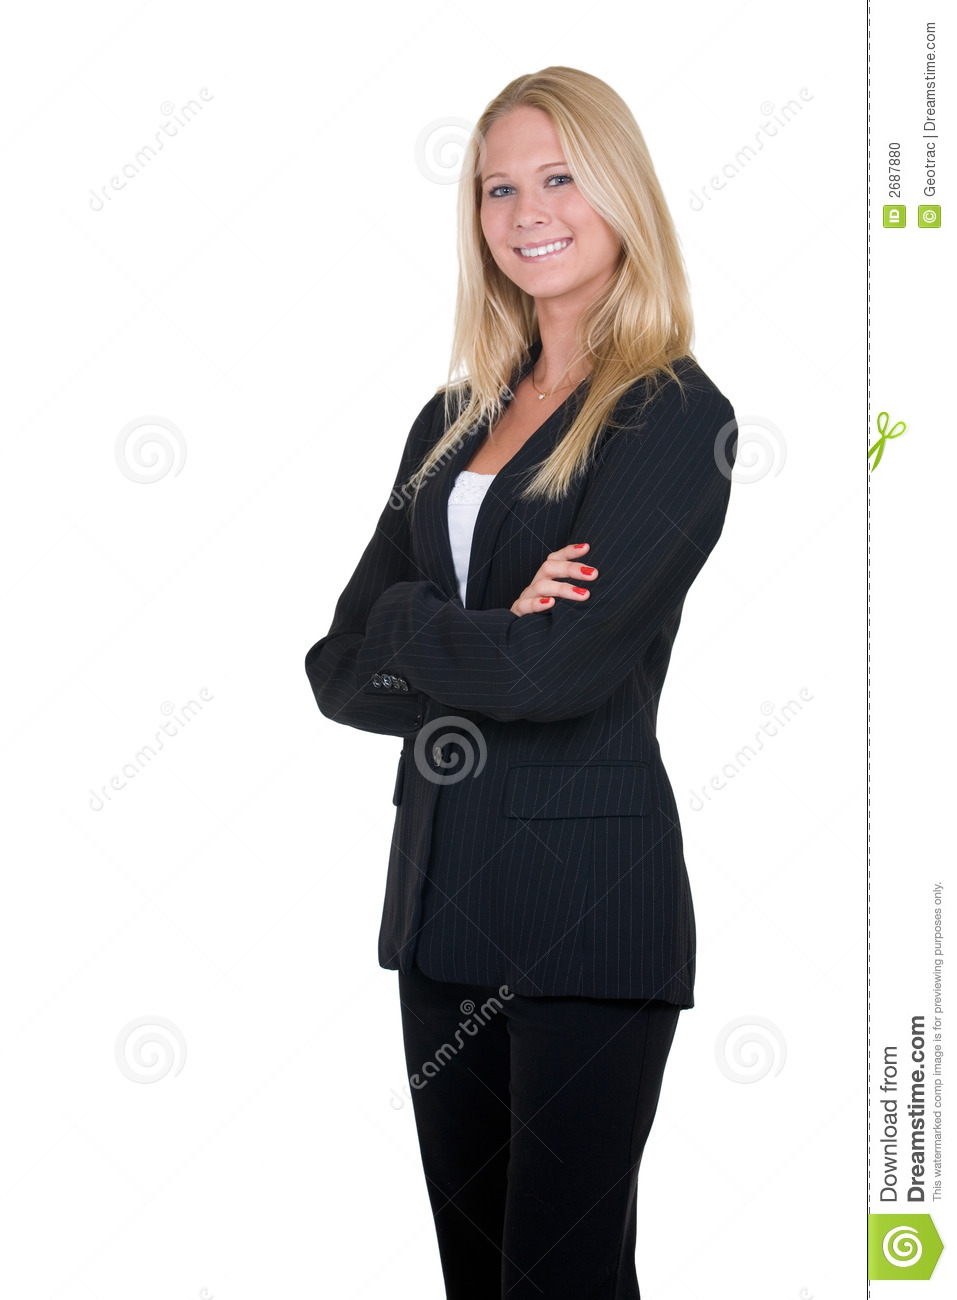 business-woman-2687880.jpg